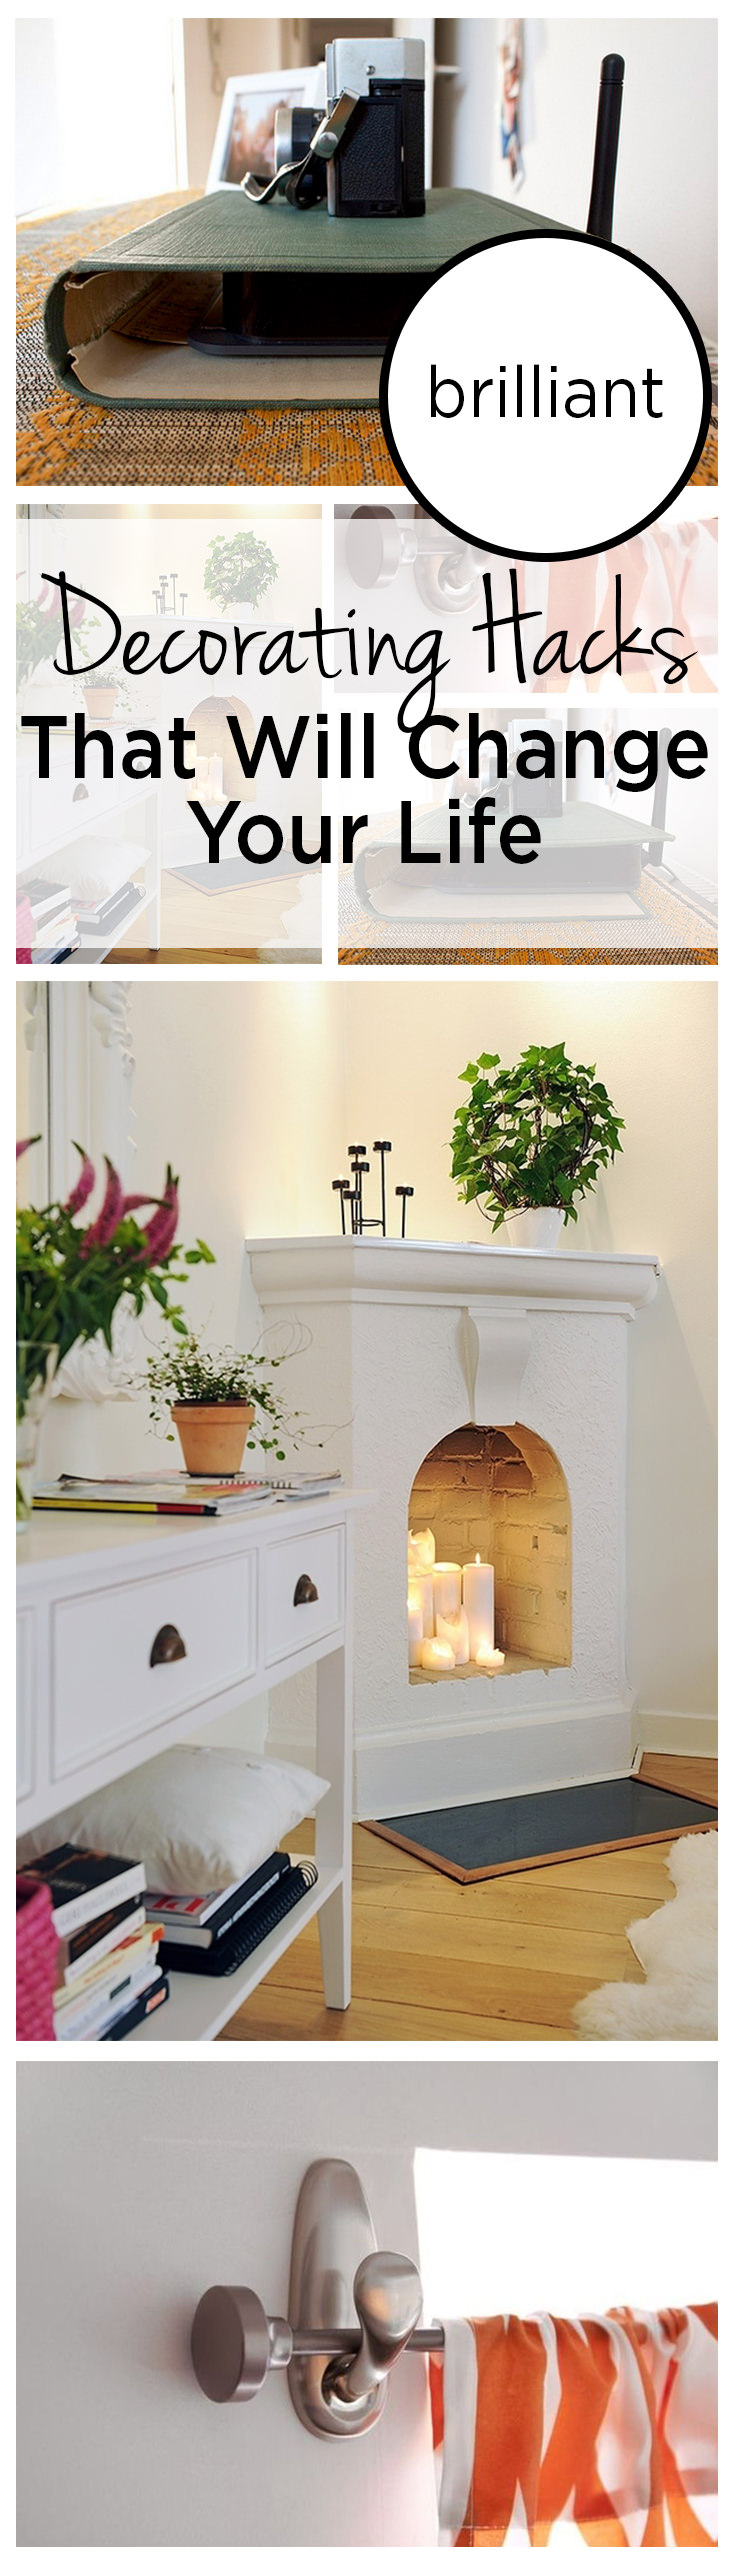 Check out these decorating hacks to decorate your home, these hacks will not only make your home look gorgeous but also save your money.